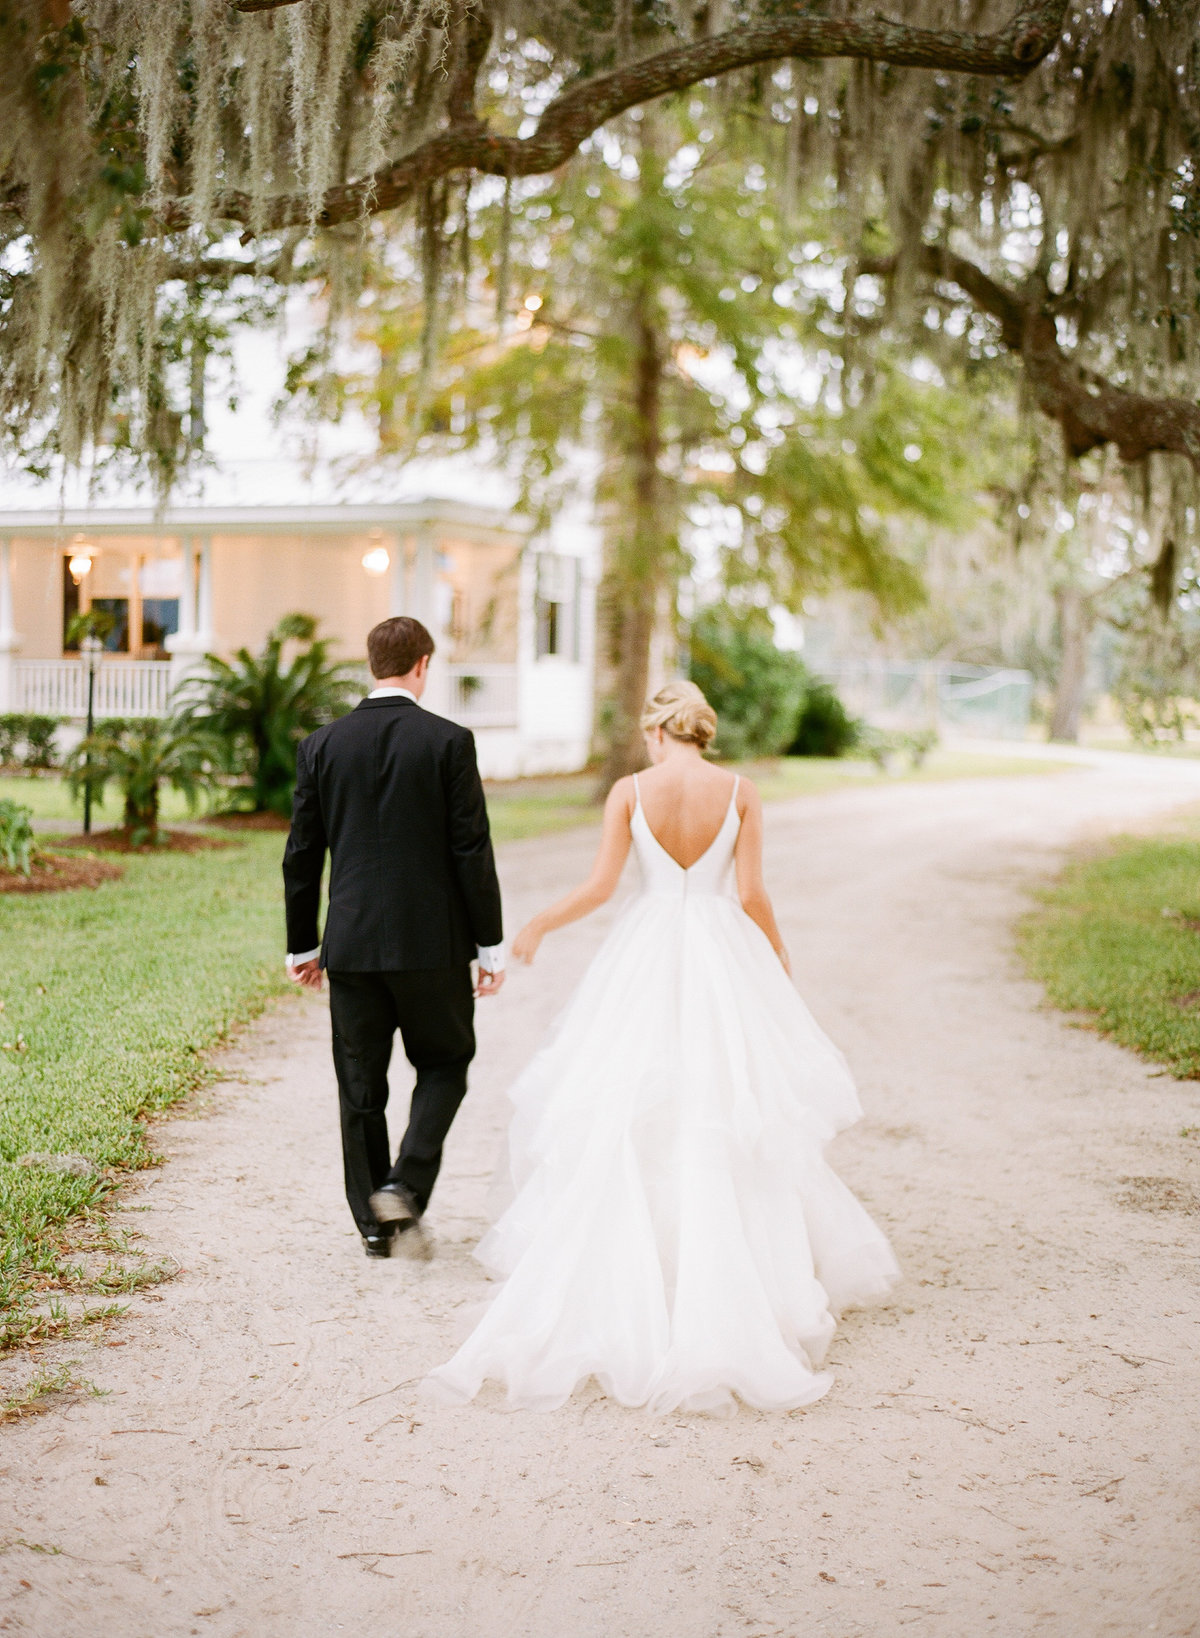 Bride and Groom Newlyweds Walking after Charleston Wedding Ceremony